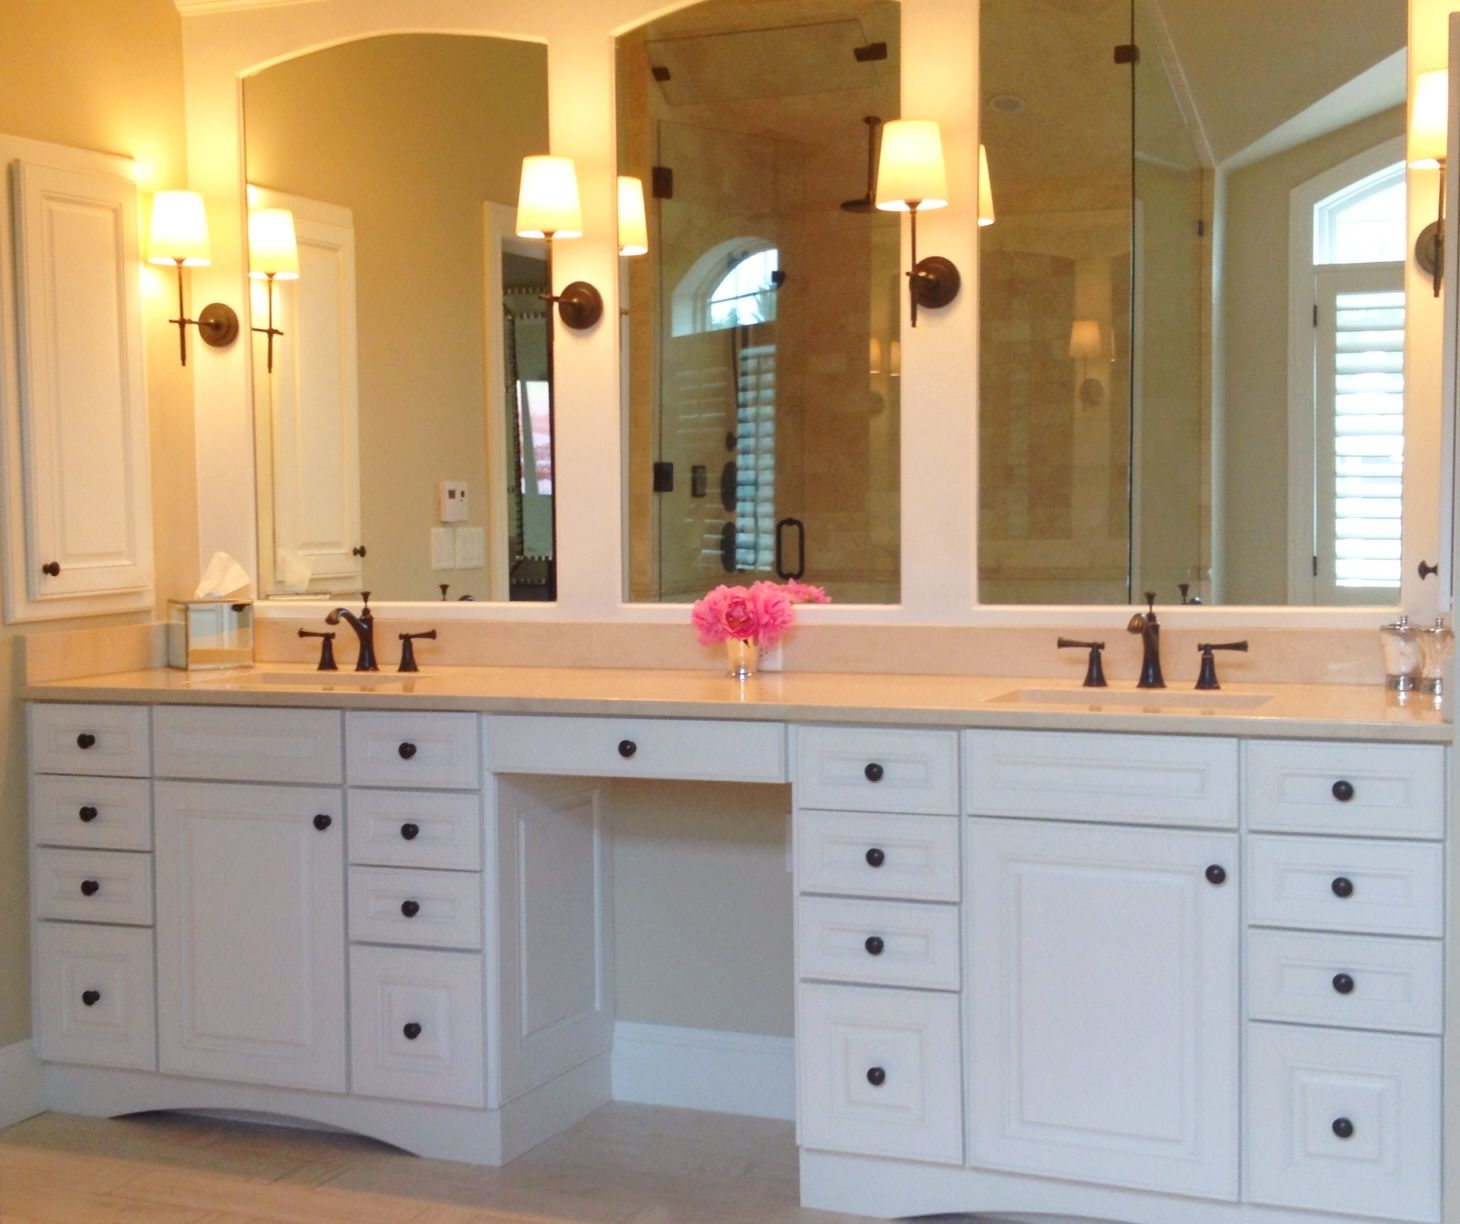 Lj Designs Master Bath Vanity Framed Mirror Arched Mirror Detail Double Vanity Knee Space Master Bath Vanity Bathroom Sink Design Double Vanity Bathroom